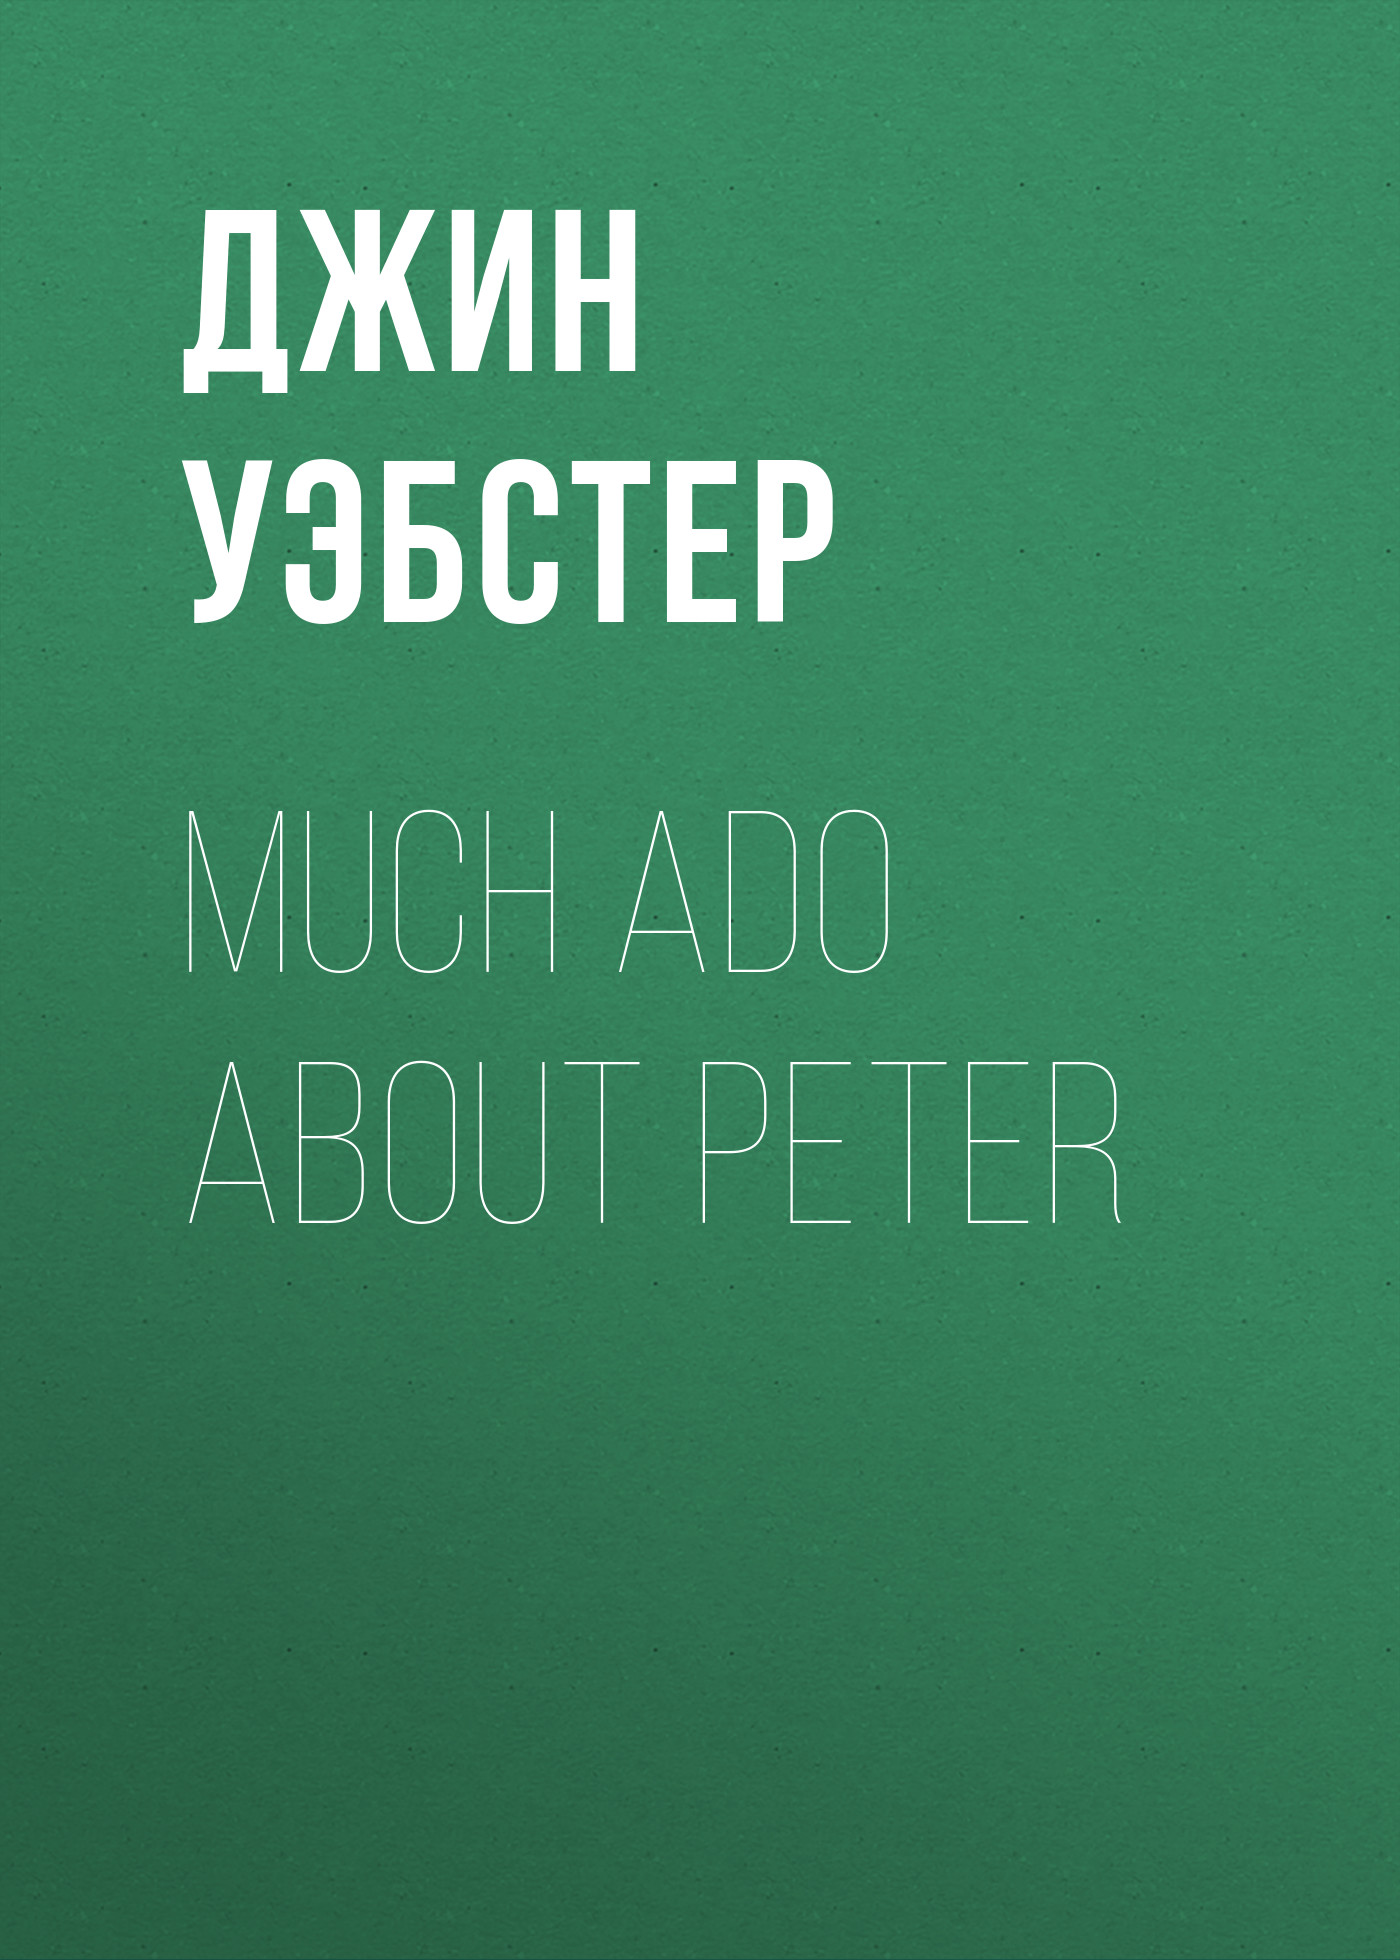 все цены на Джин Уэбстер Much Ado About Peter онлайн